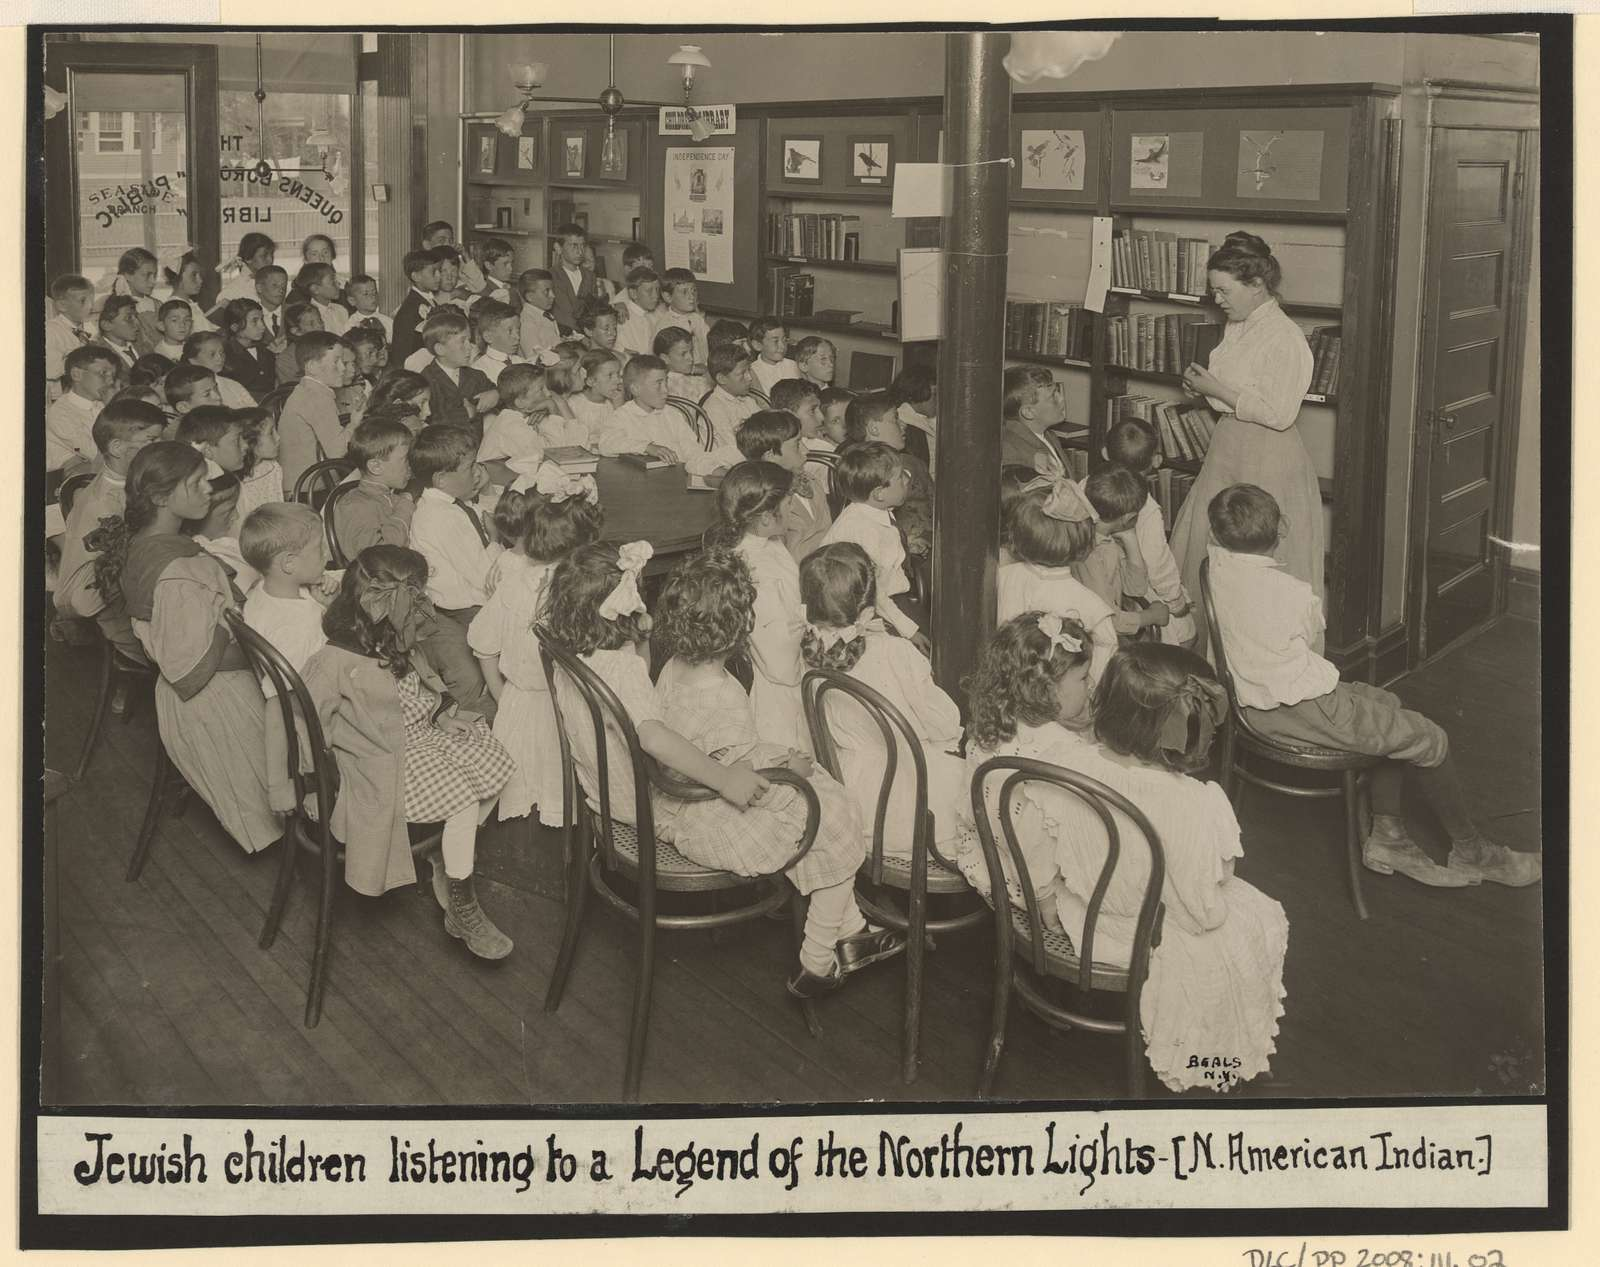 Jewish children listening to A Legend of the Northern Lights (N. American Indian) / Beals, N.Y.